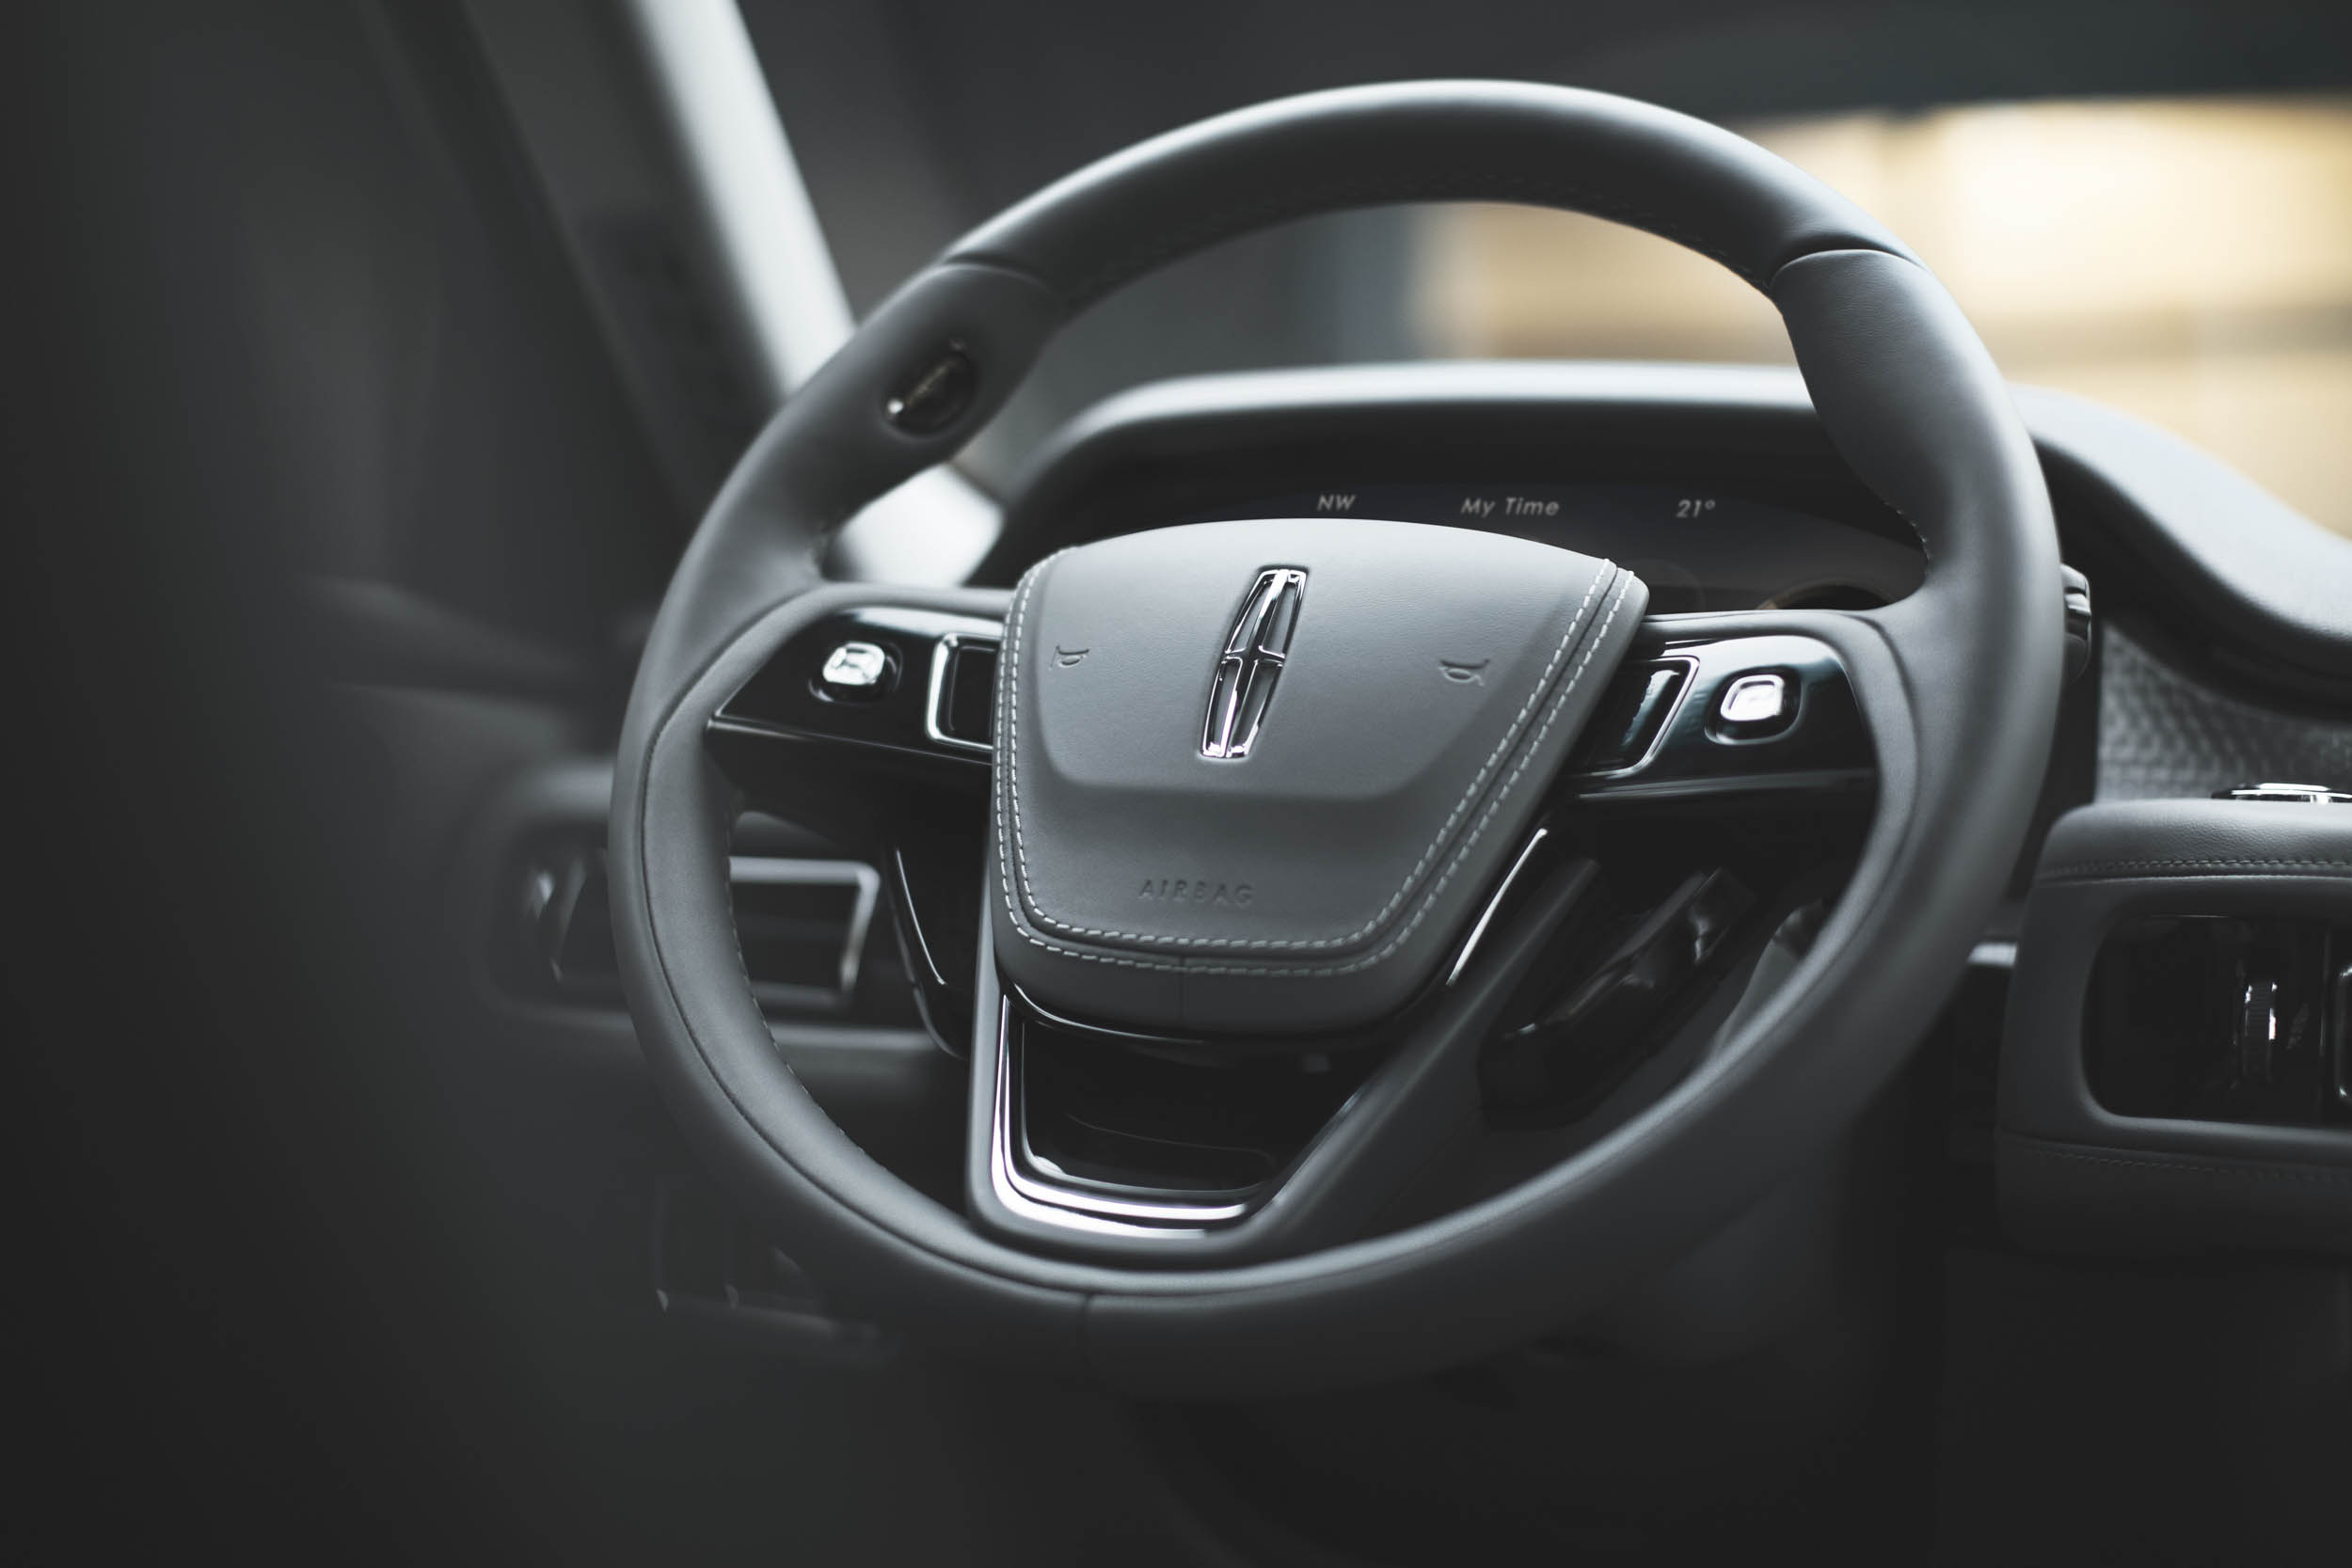 2020 Lincoln Aviator steering wheel